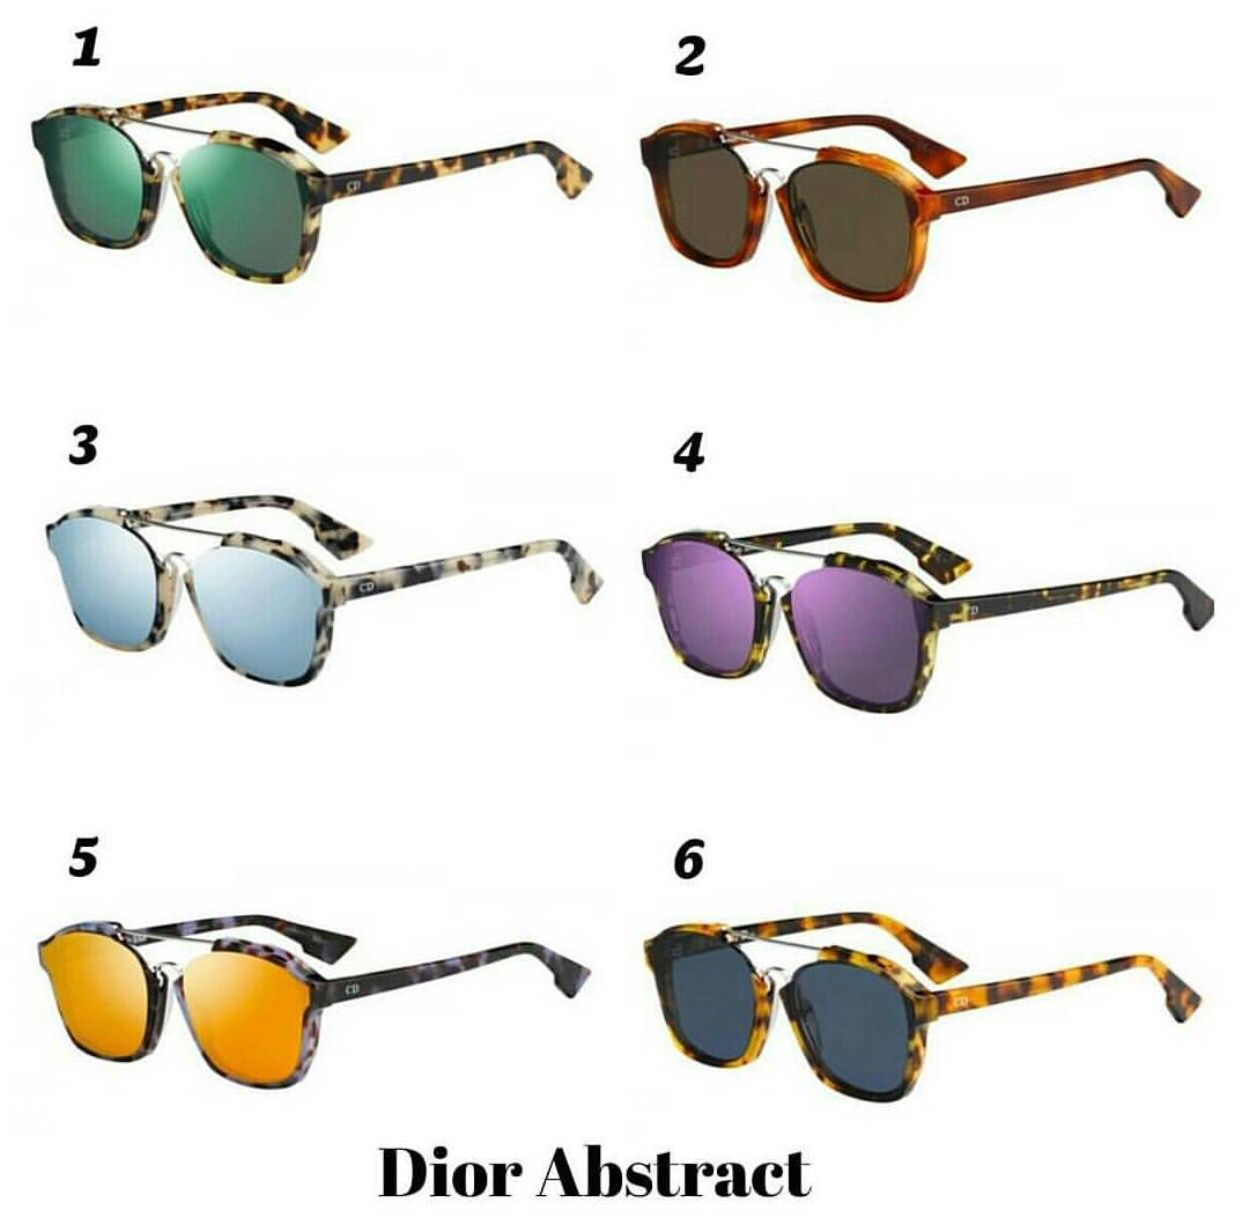 5d9944ca321c Dior Abstract sunglasses